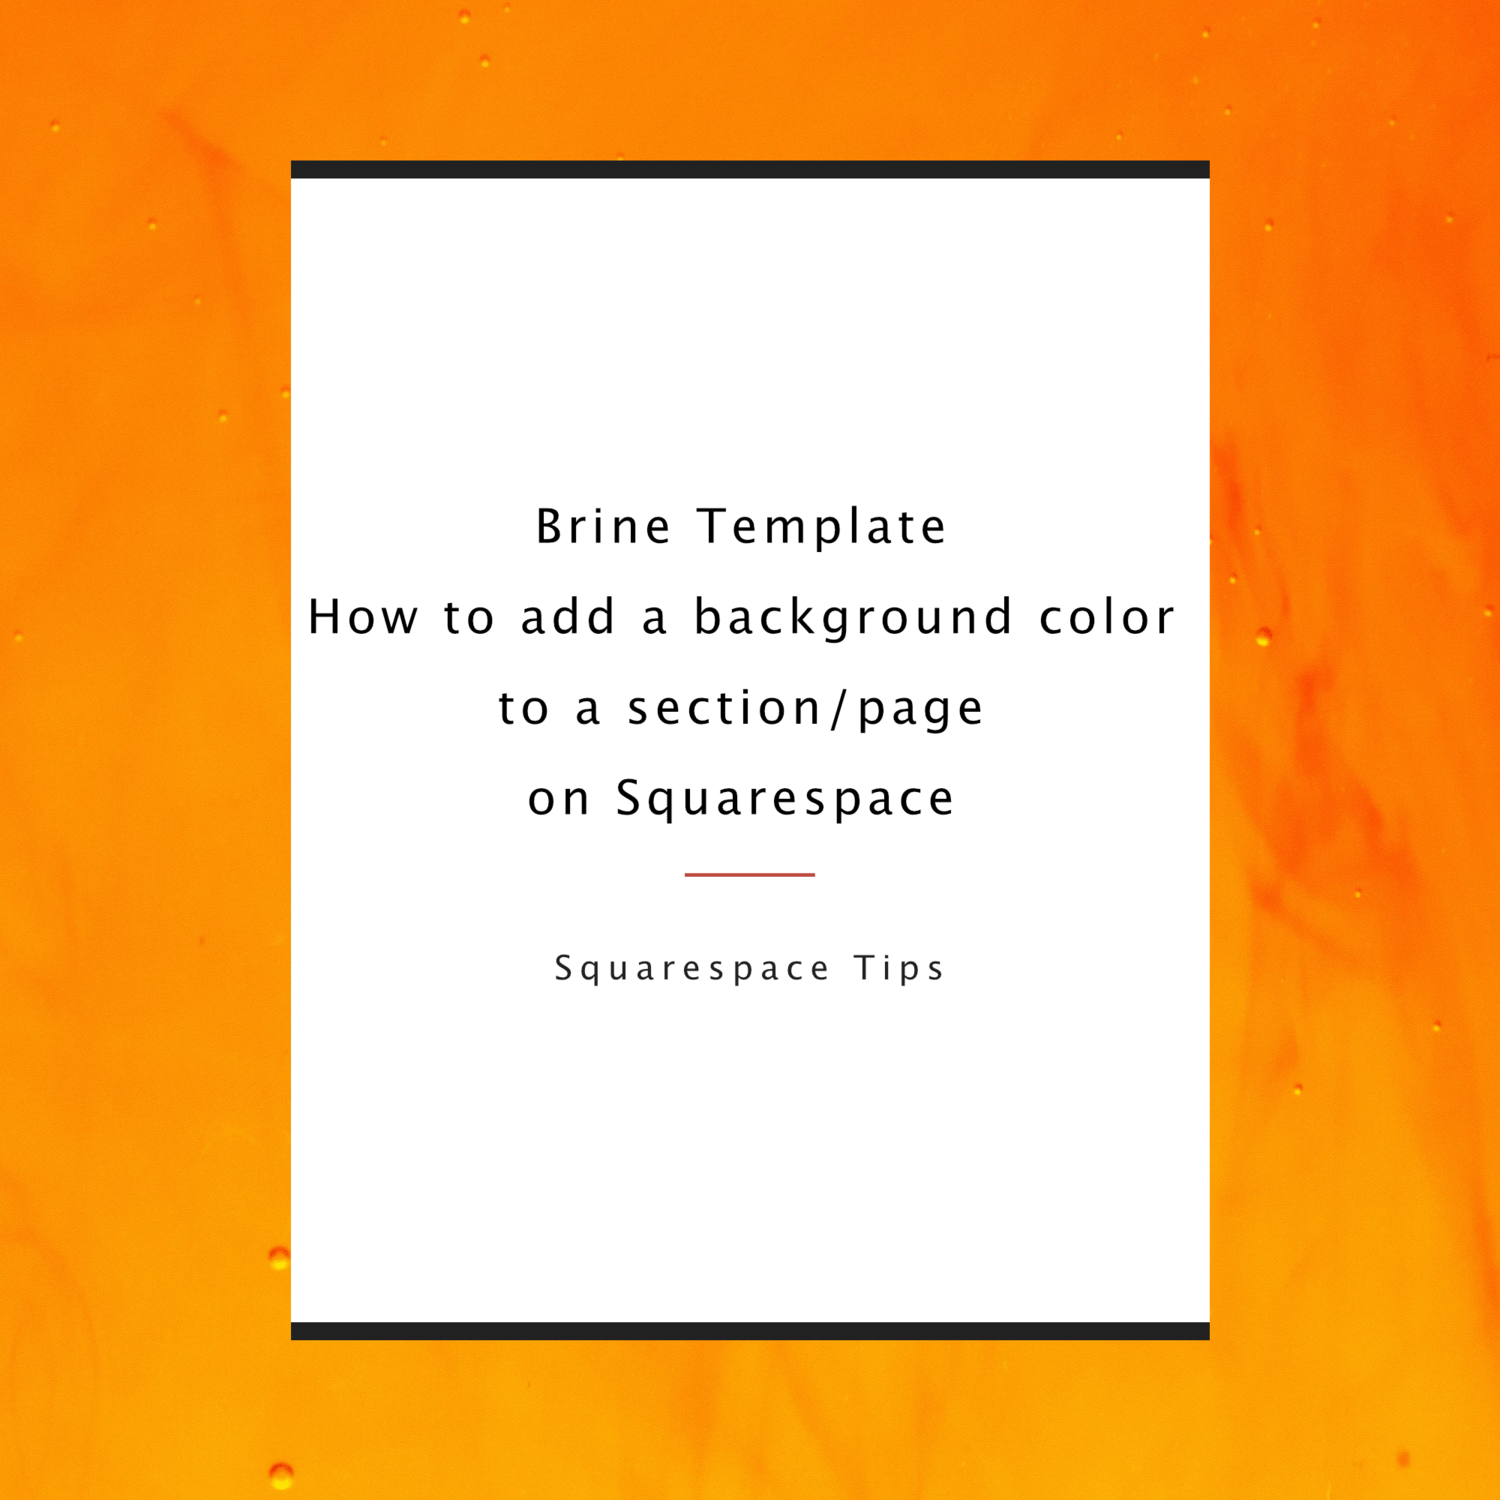 Brine Template How To Add A Background Color To A Section Or A Page On Squarespace Maia Hariton